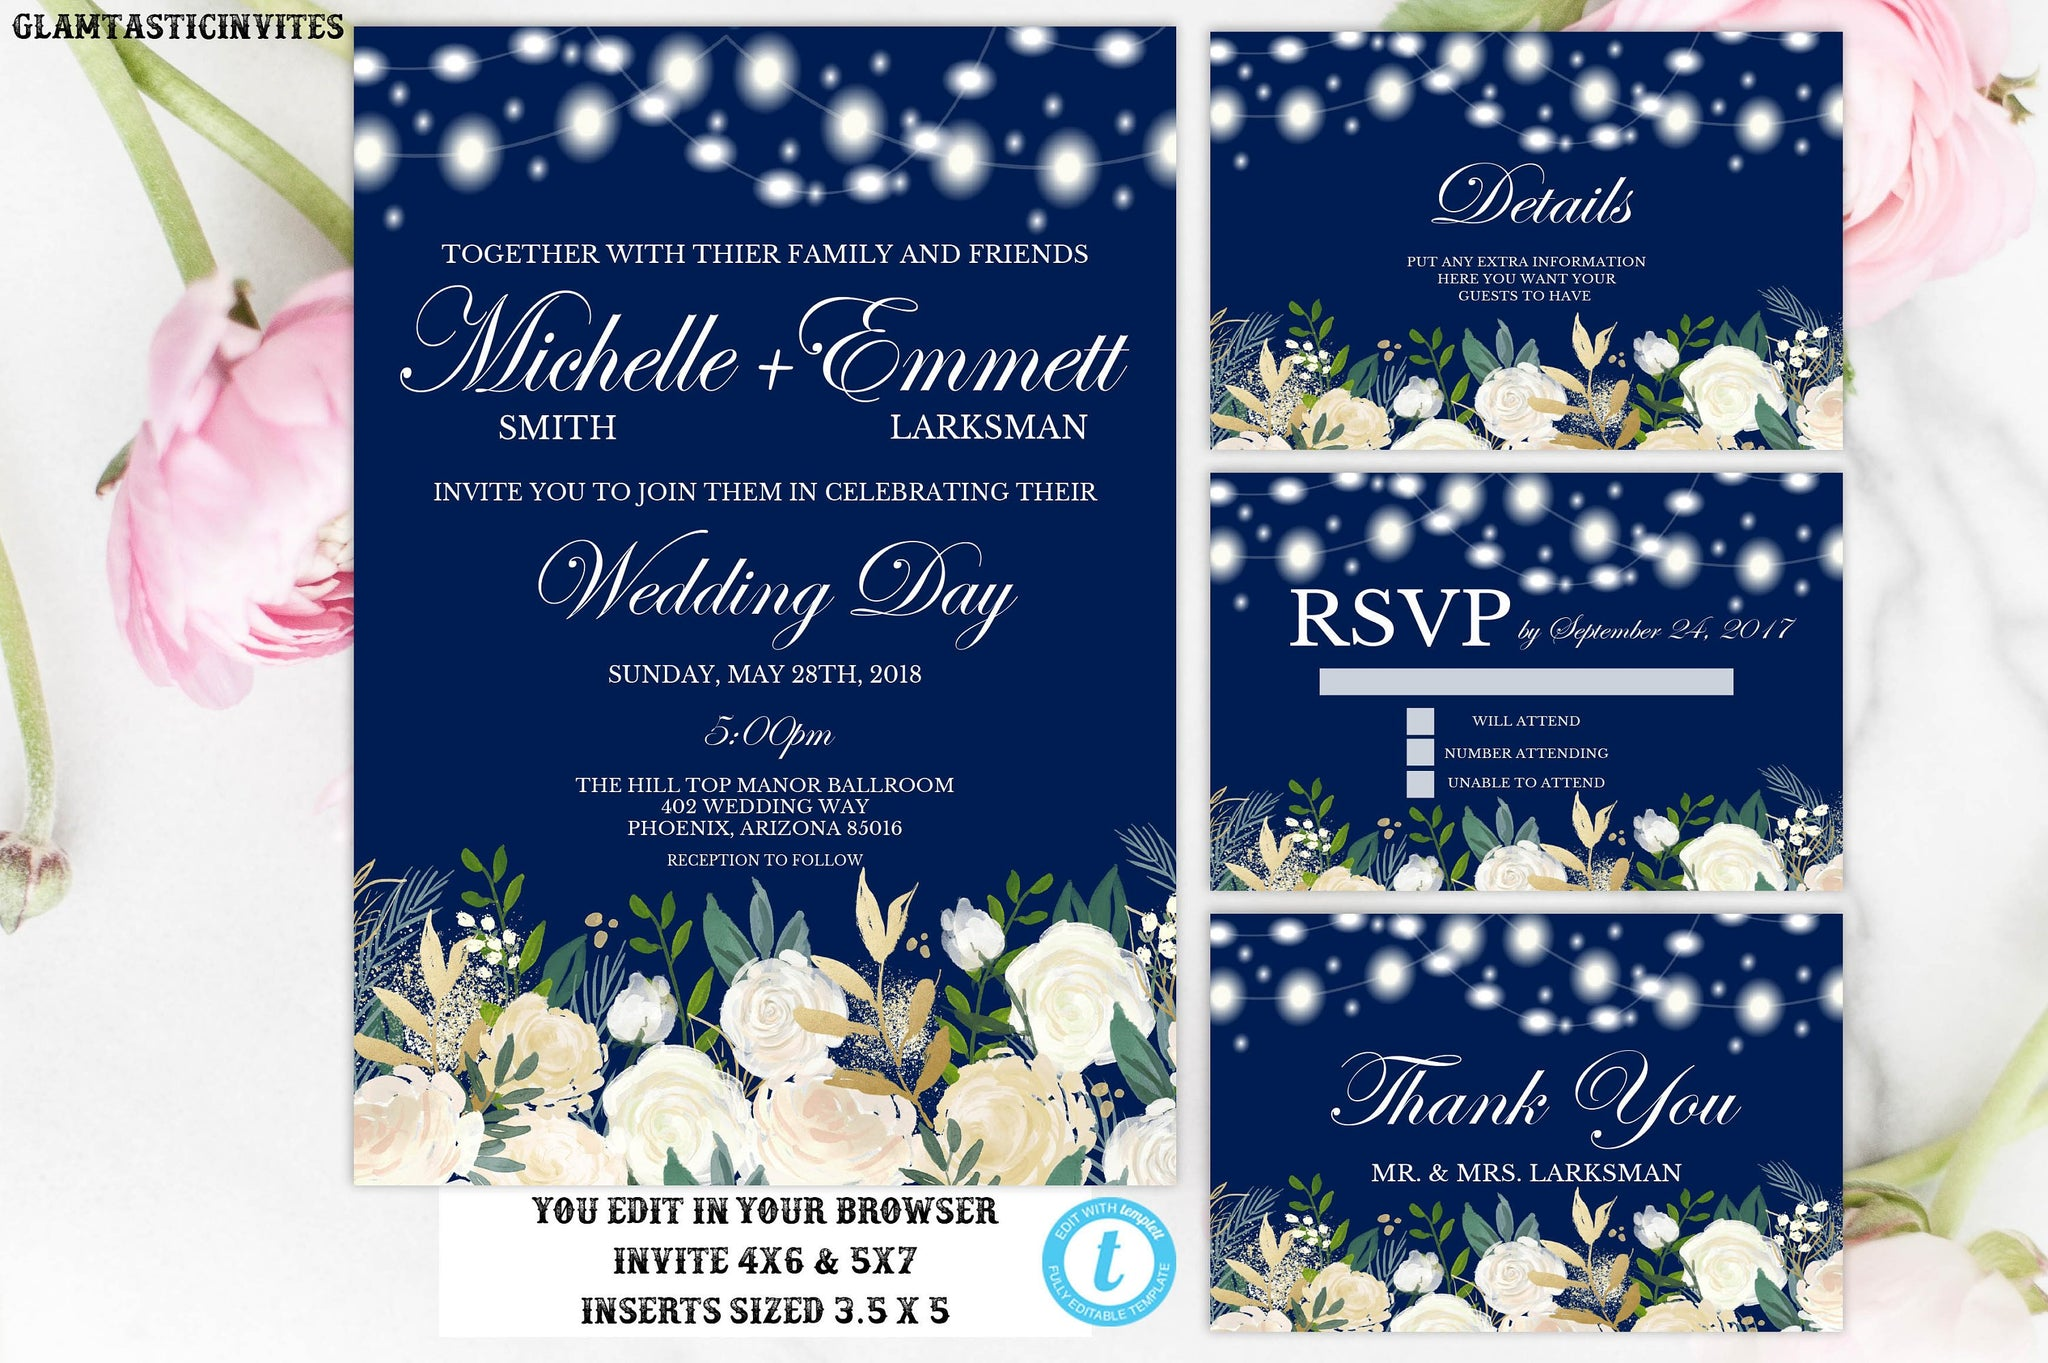 Wedding Invitation Suite Template, Blue, White Rose, Floral, Blue and White Wedding Invitation, Instant Download, Editable, Printable, Gold